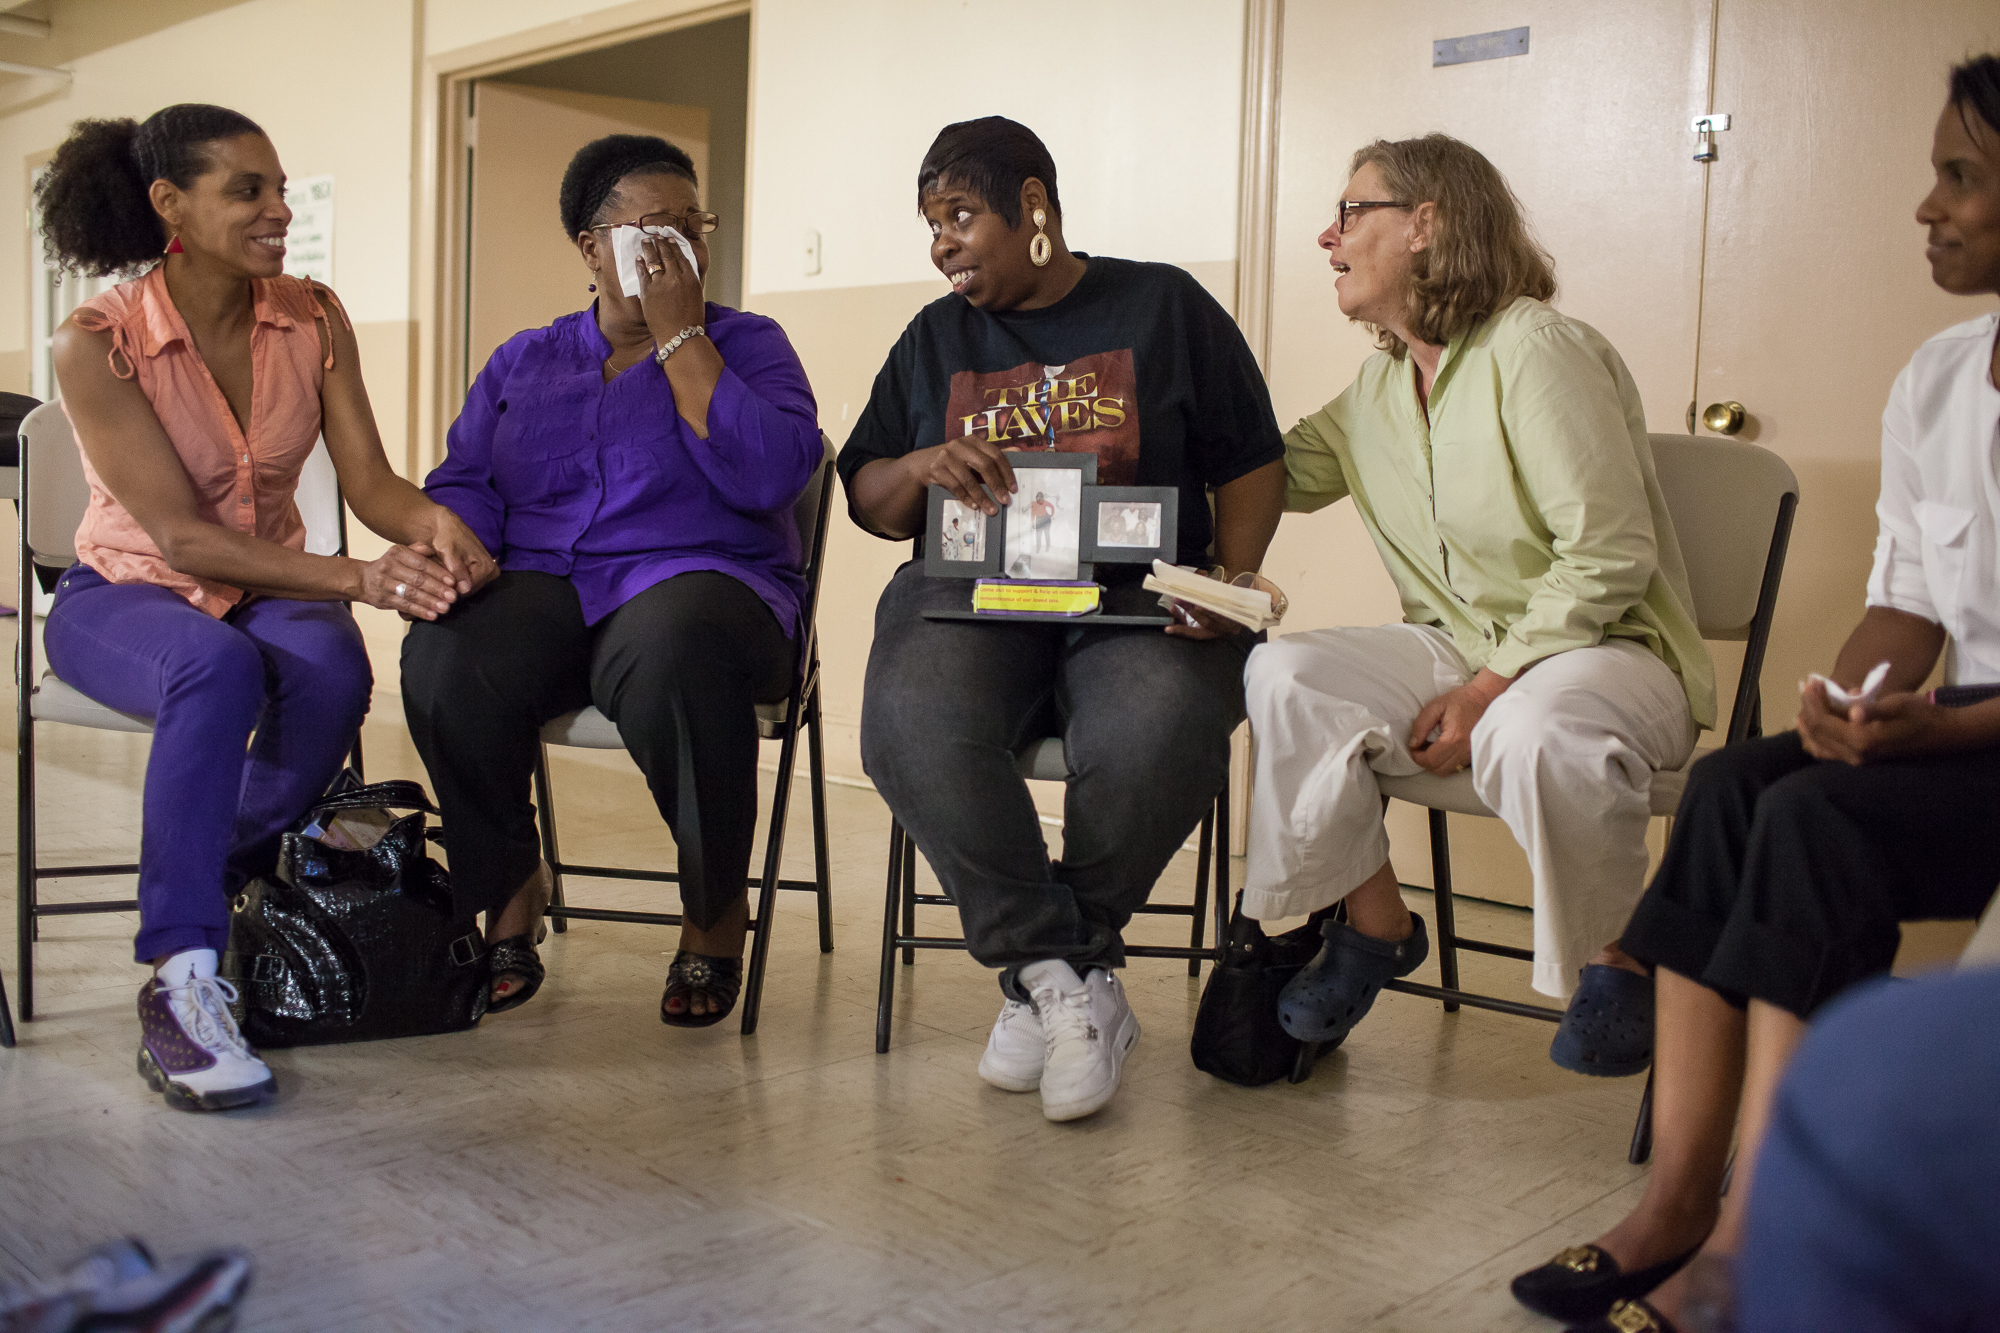 Community is formed from grief as mothers laugh and weep when they remember their murdered sons and daughters during a meeting of the Circle of Hope and Healing. The meetings are held for grieving parents by The Religious Coalition for a Nonviolent Durham in the basement of The Shepherd's House United Methodist Church in East Durham.